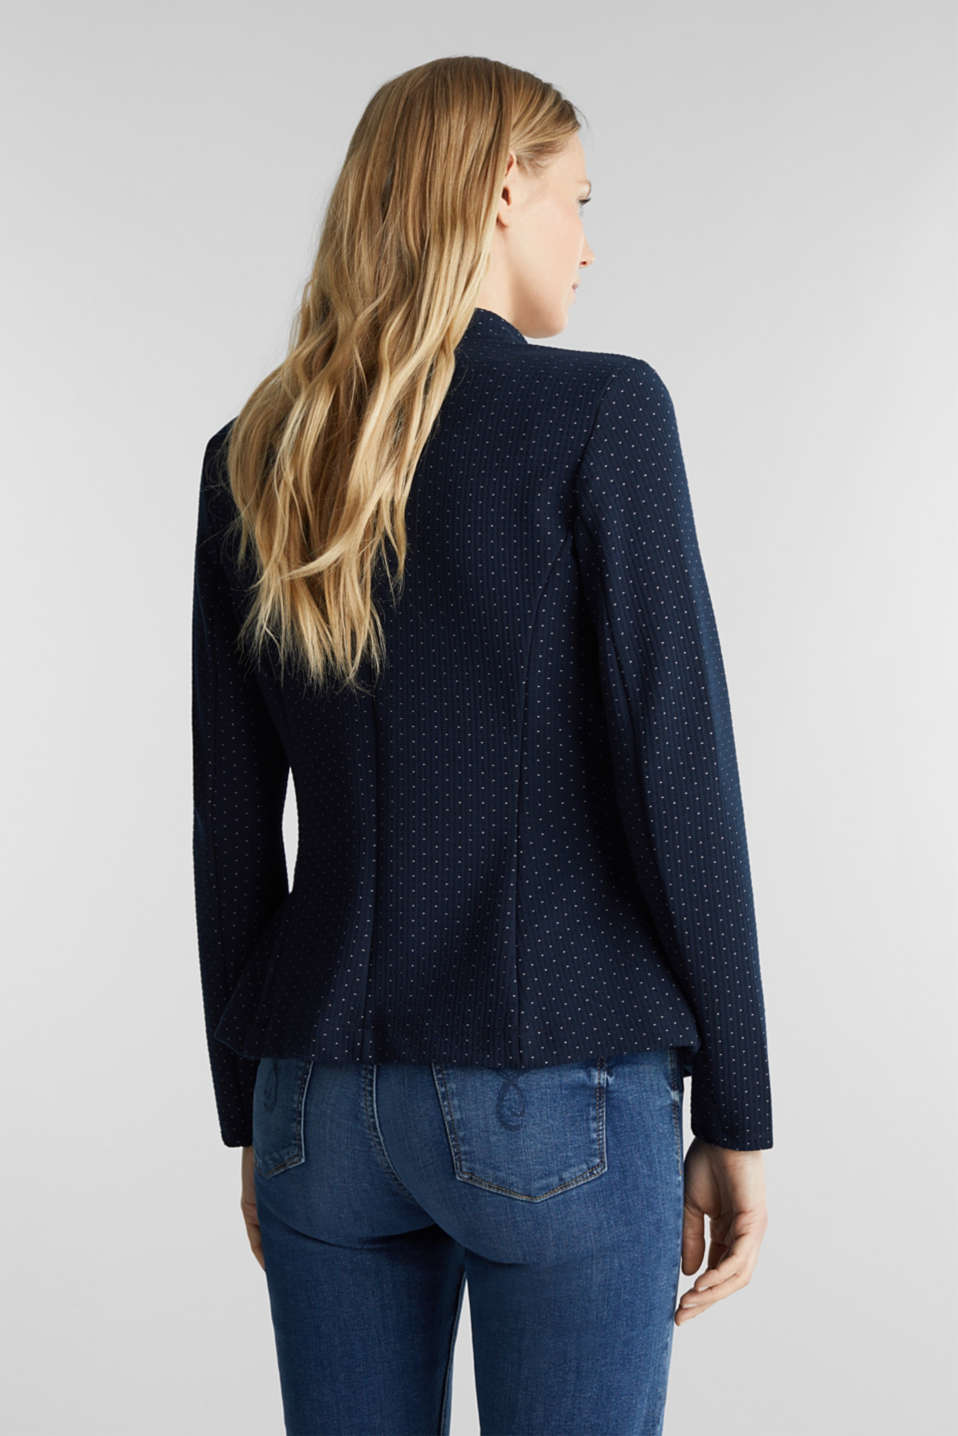 Stretch jersey blazer with jacquard polka dots, NAVY, detail image number 3